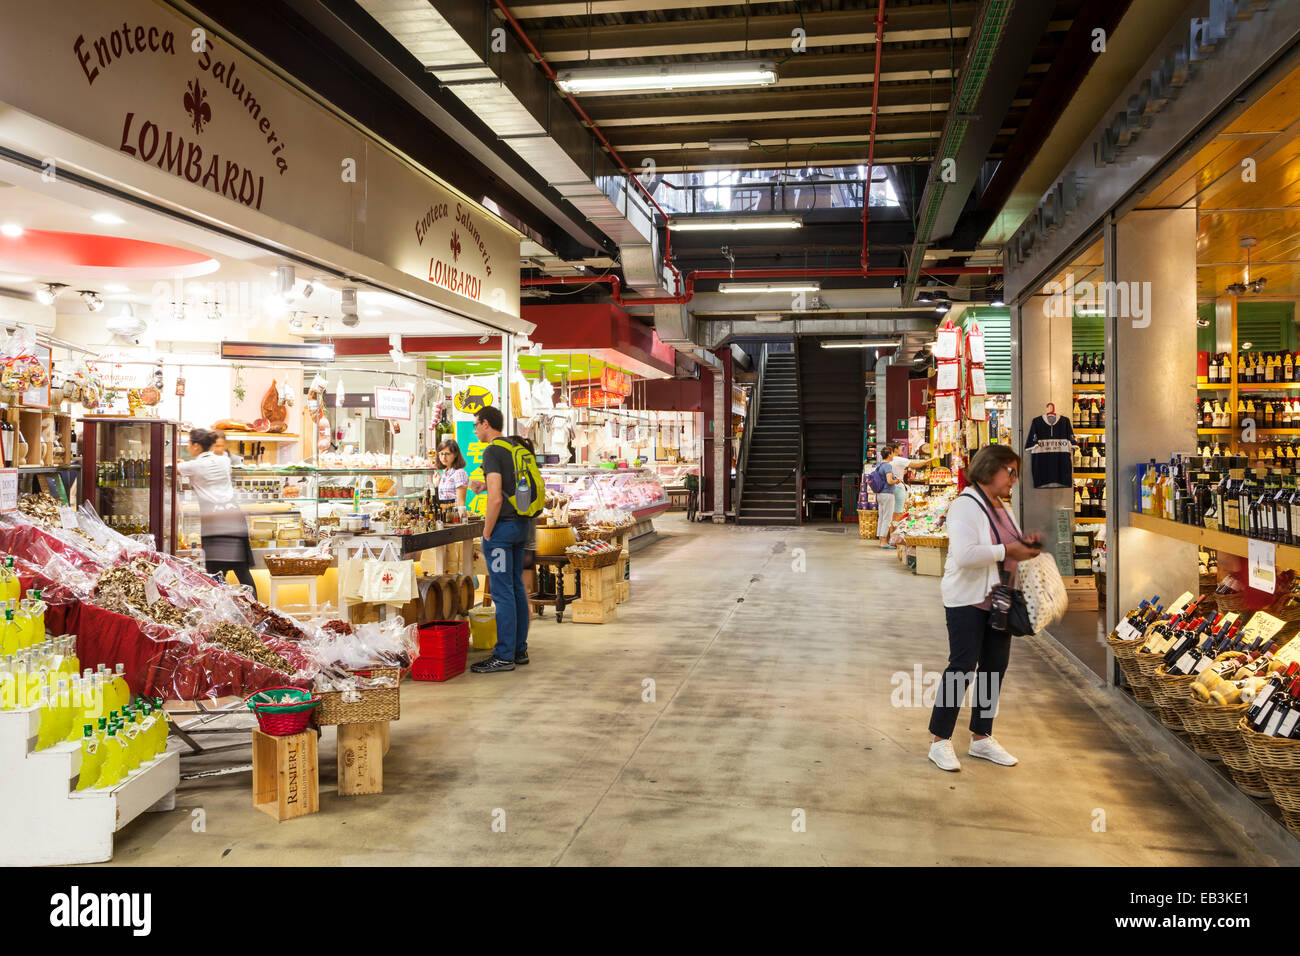 Mercato Centrale in Florence, Italy. - Stock Image